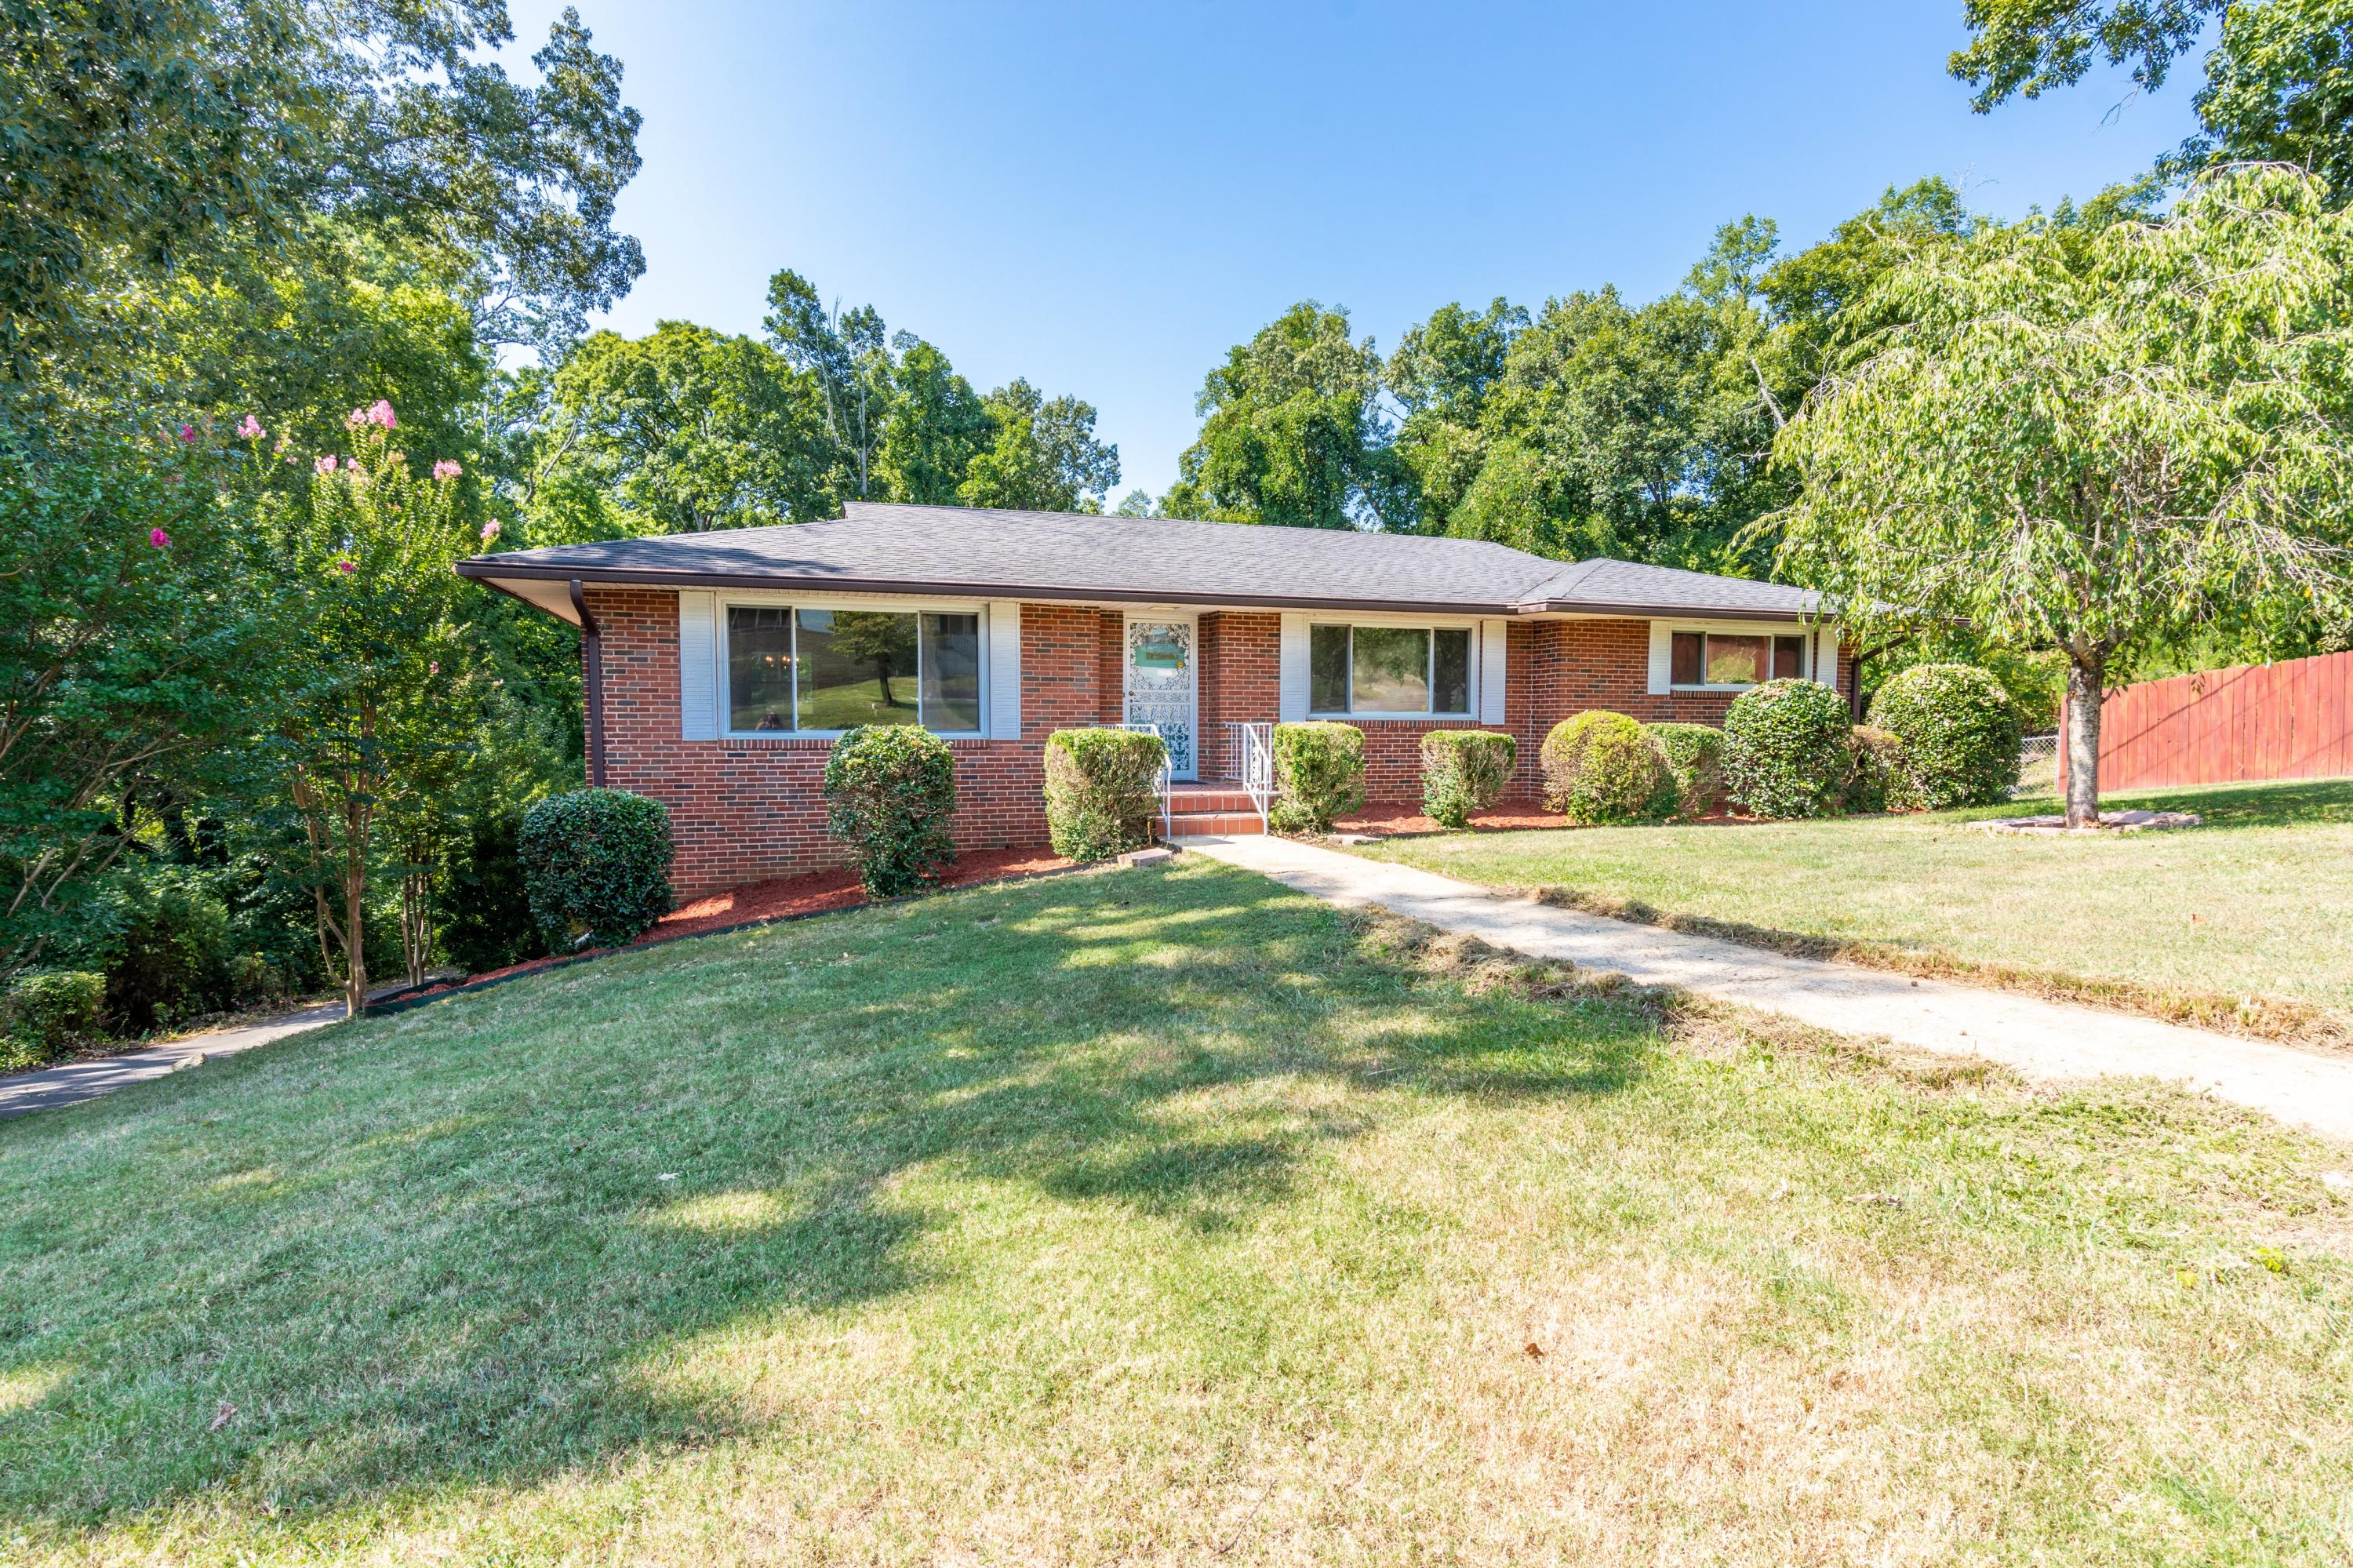 4012 Rogers Rd, Chattanooga, TN 37411